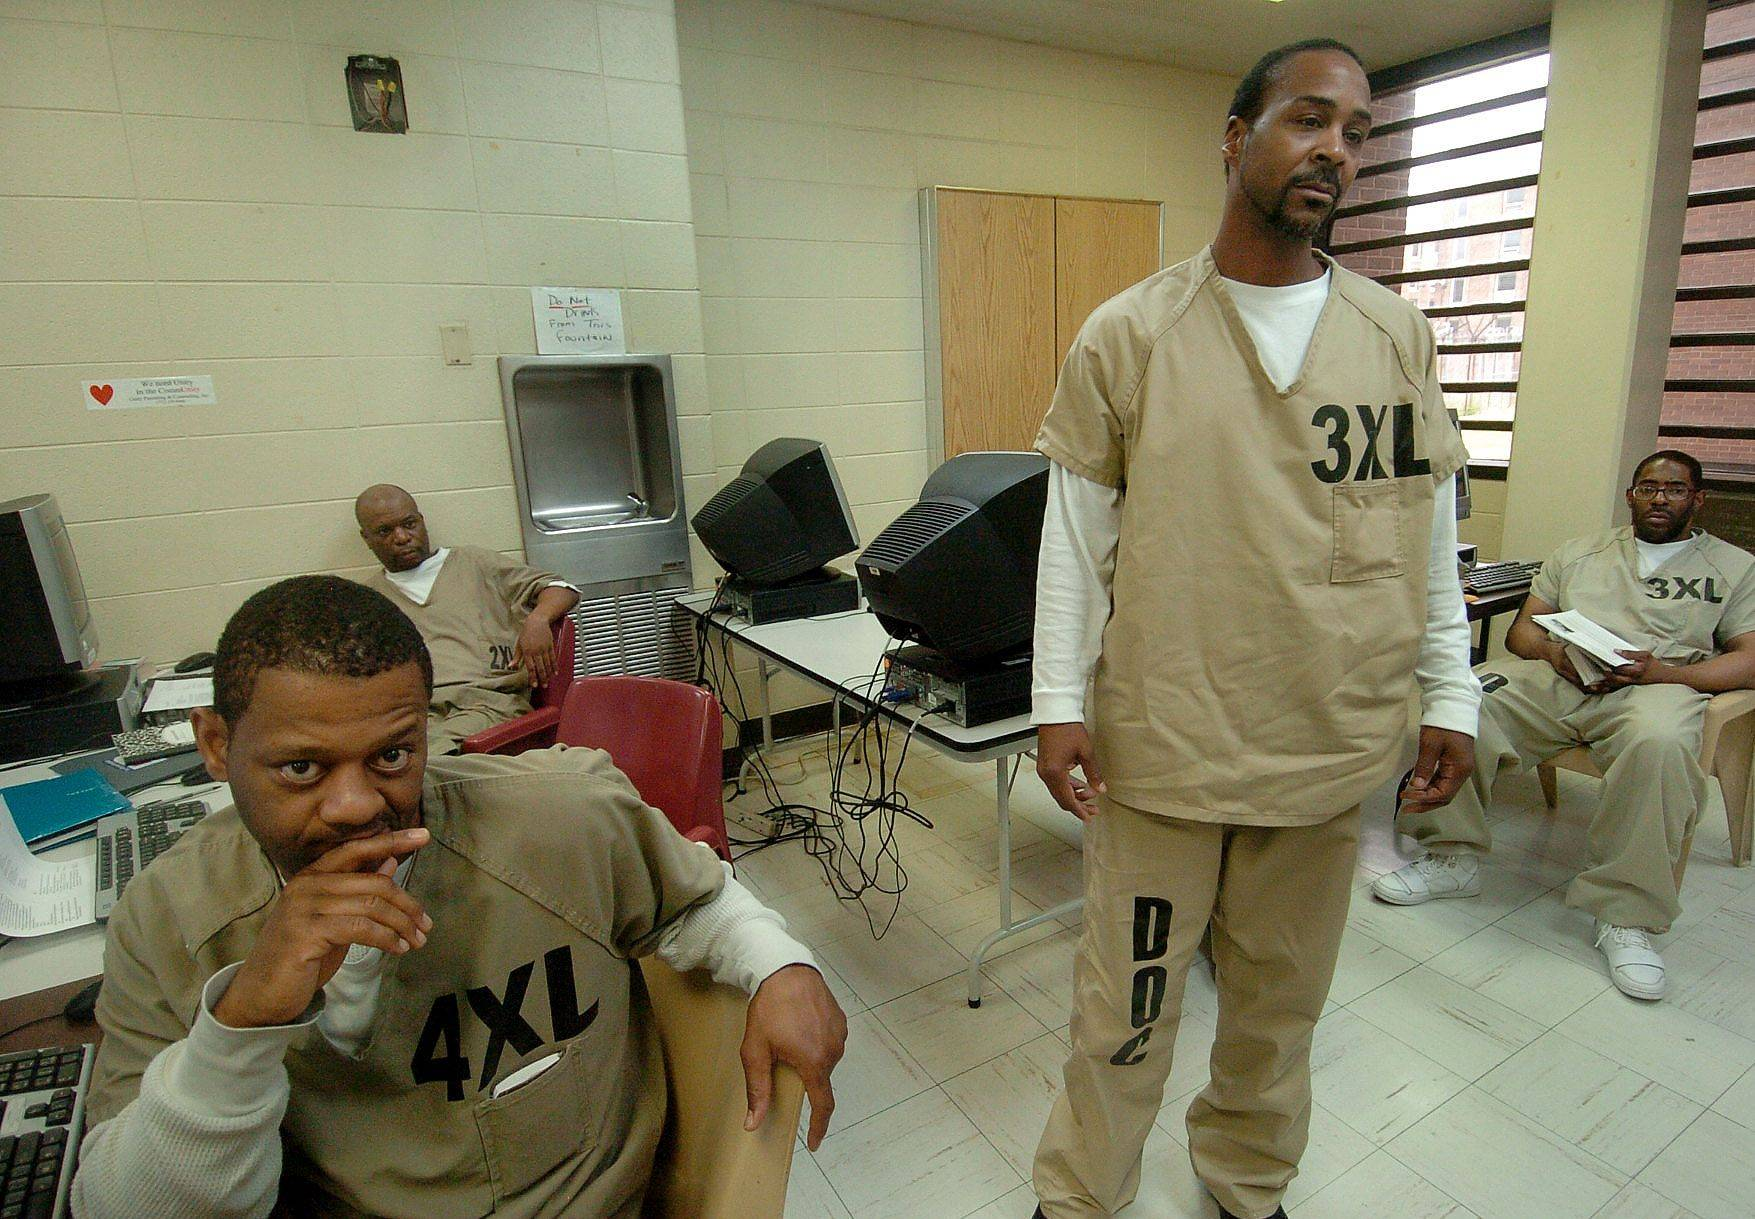 During English class, U.S. Navy Veteran Shaun O'Cain, right, talks about his experiences with the special unit at Cook County Jail to house veterans charged with felonies.